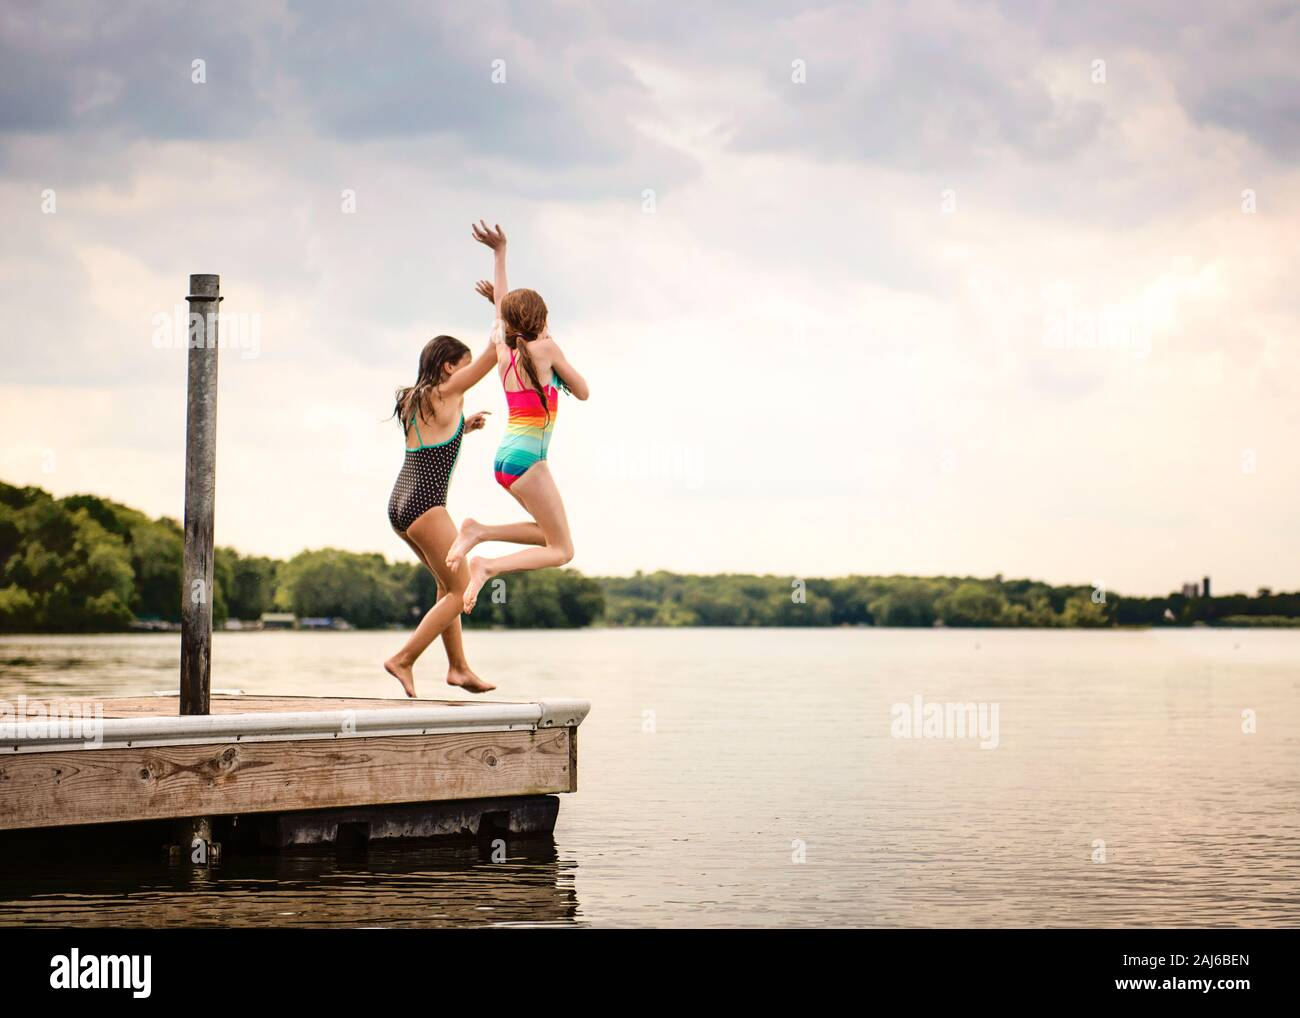 Two Young Girls in Swimsuits Jumping off a Dock into a Lake Stock Photo